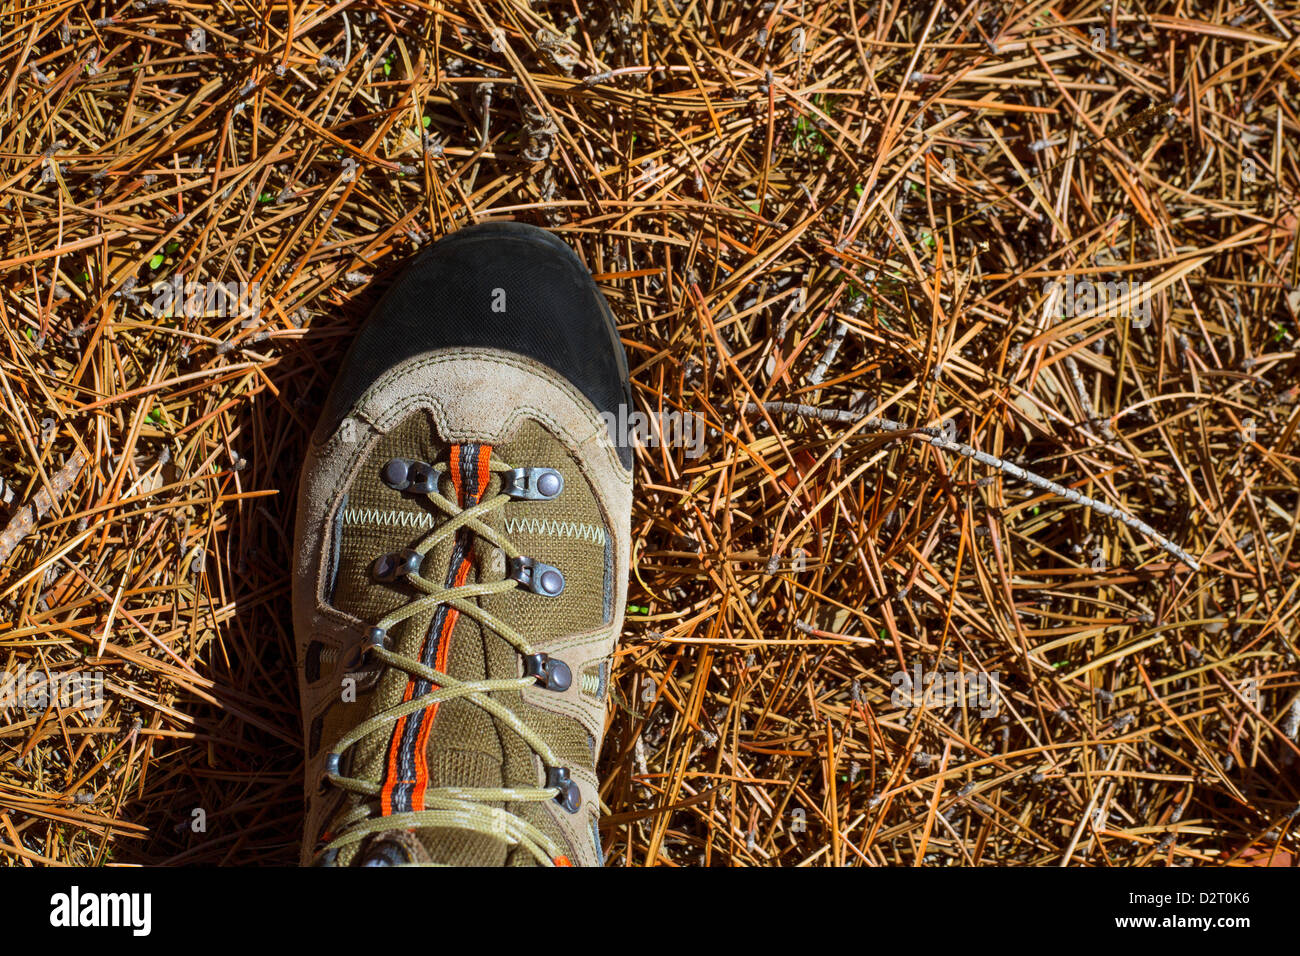 Hicker explorer feet boot detail on pine dried needles at mountain - Stock Image